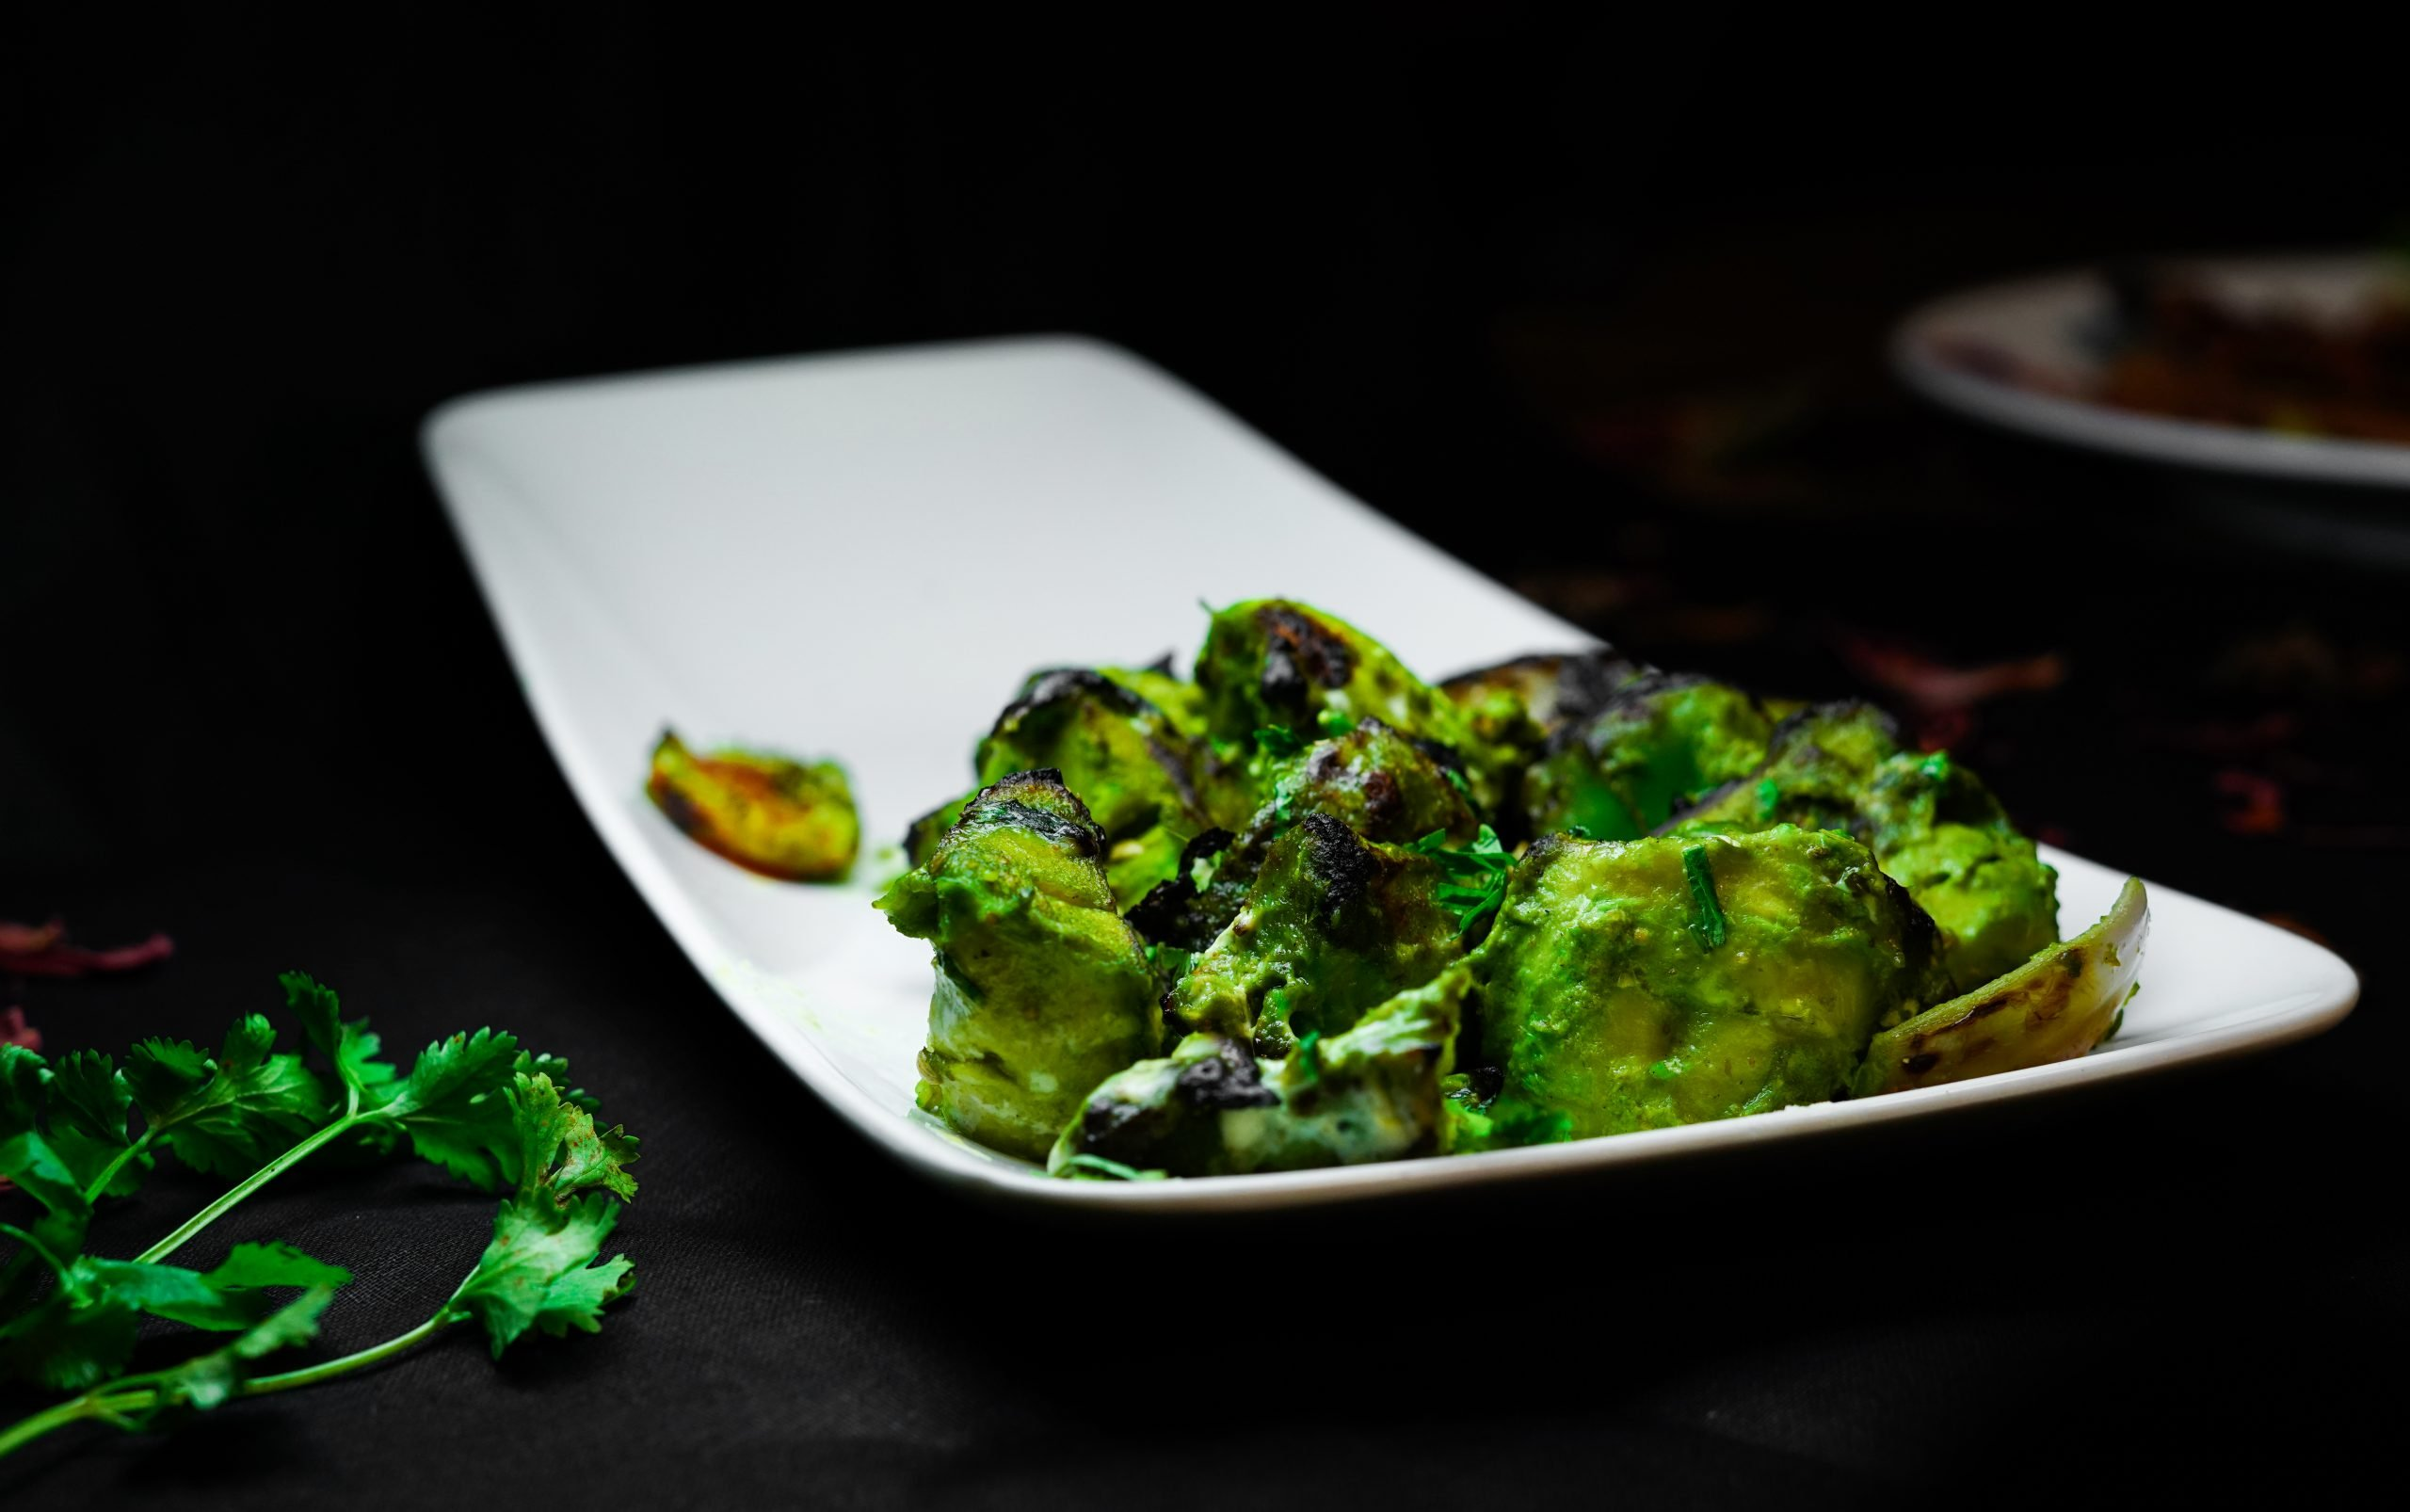 Green Dish on a Plate